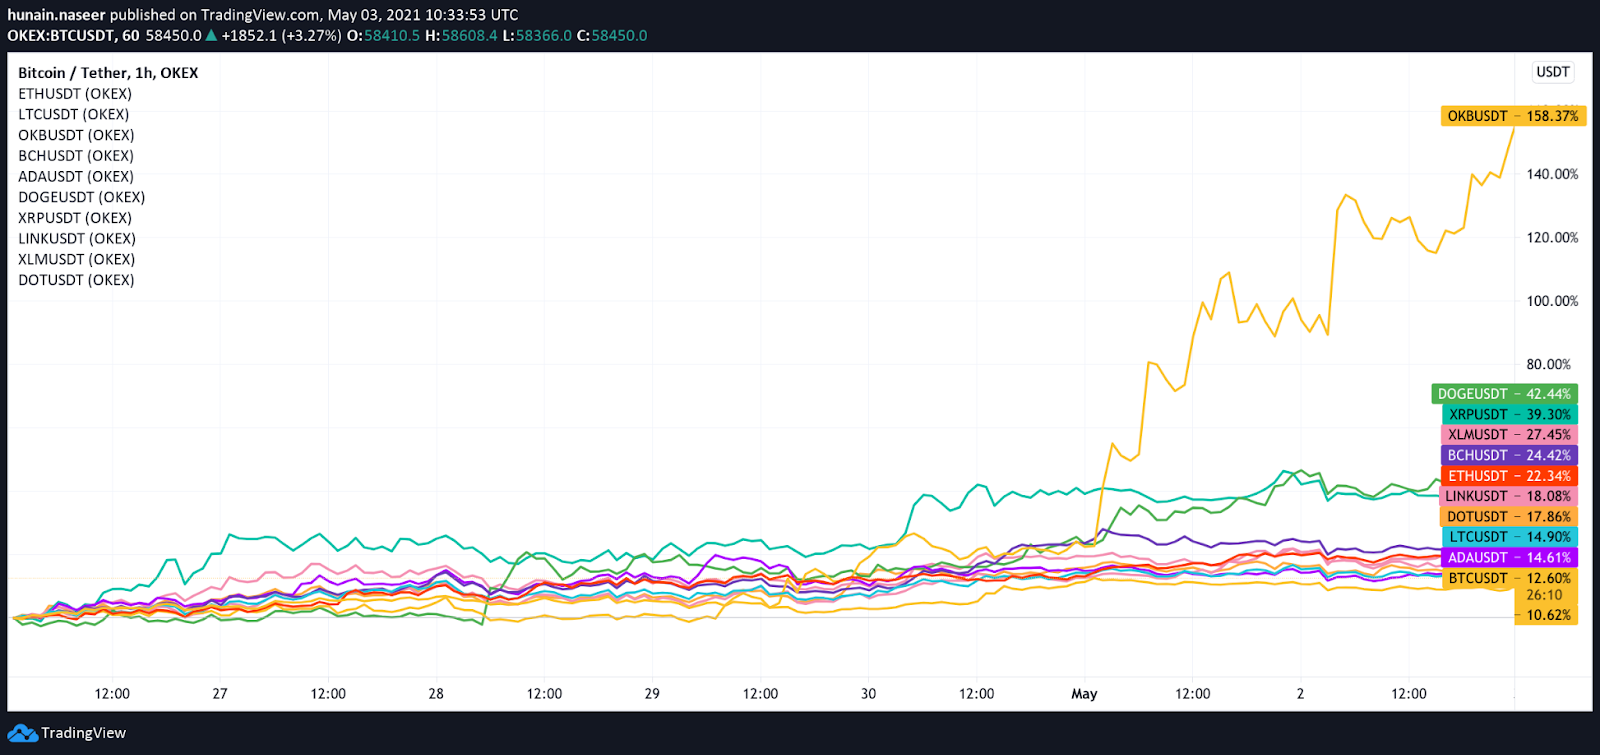 OKEx top traded coins